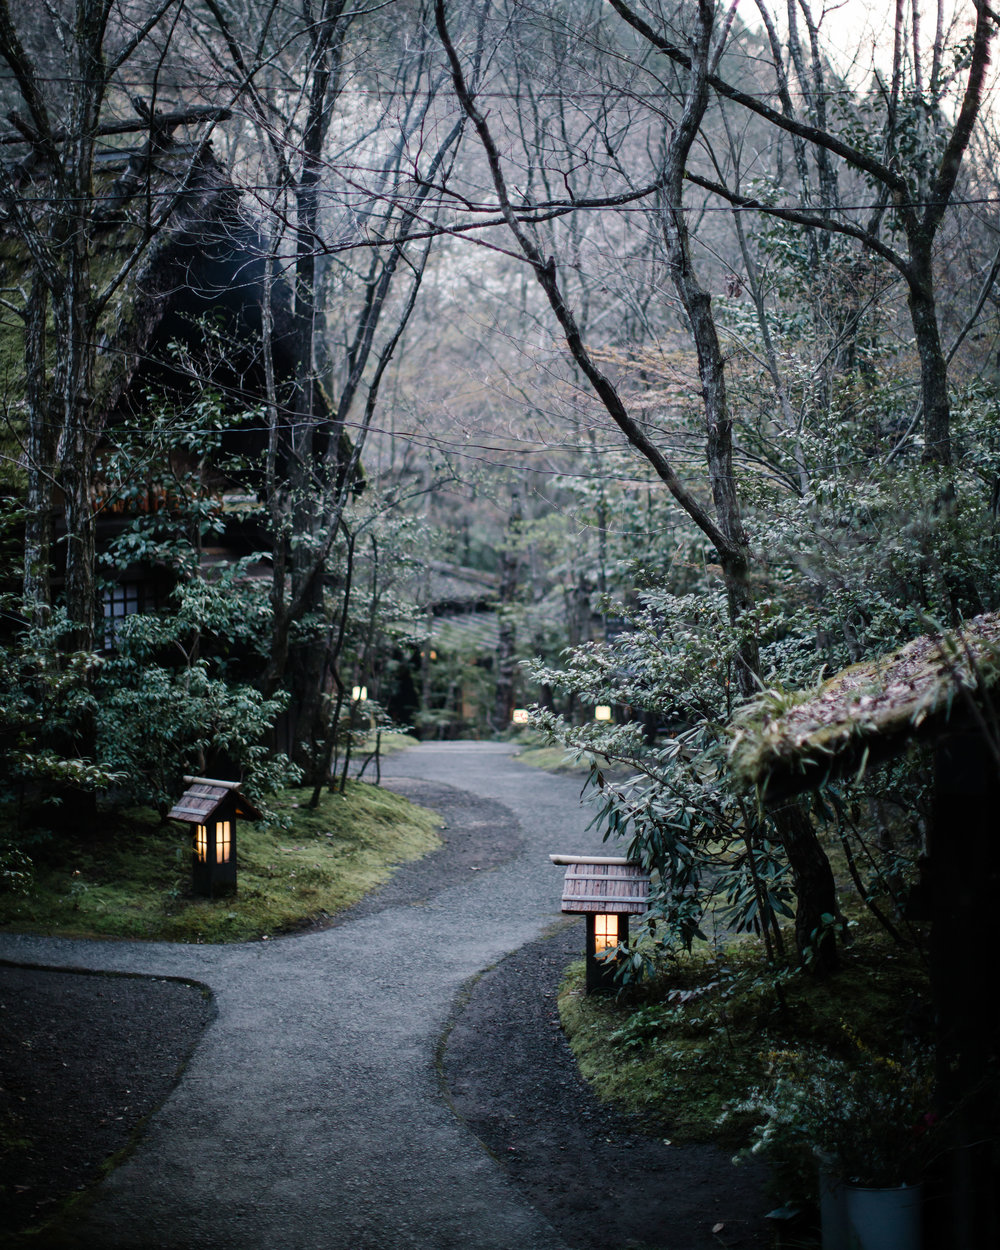 A road in Japan lined with trees and tea lights on the road